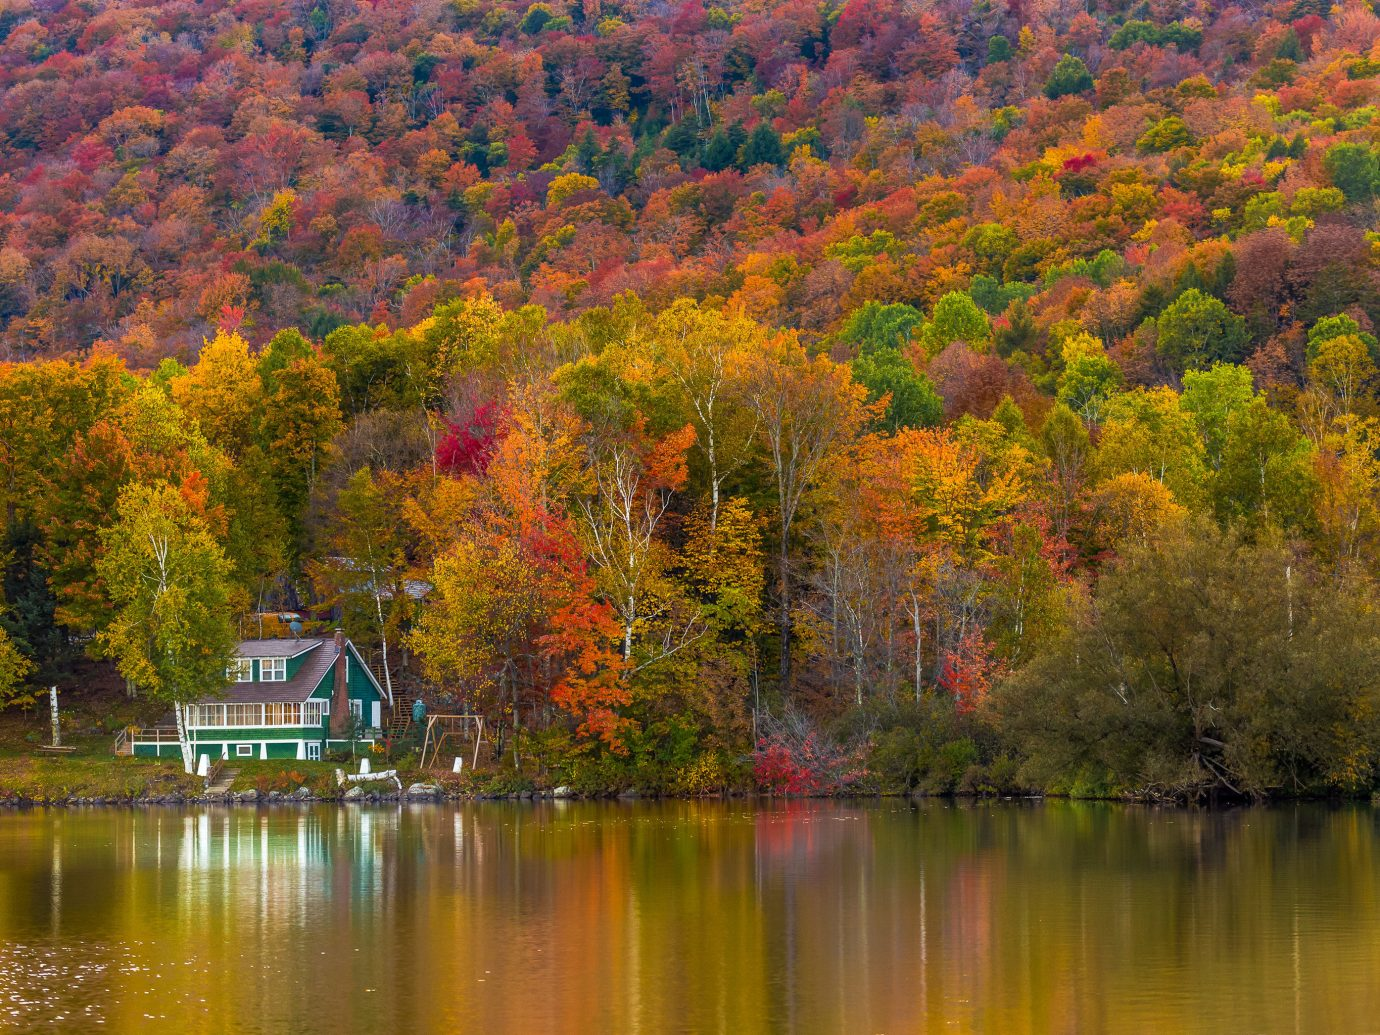 Lakes + Rivers Outdoors + Adventure Trip Ideas tree water outdoor Nature River Lake reflection autumn season leaf plant woody plant morning landscape flower pond surrounded